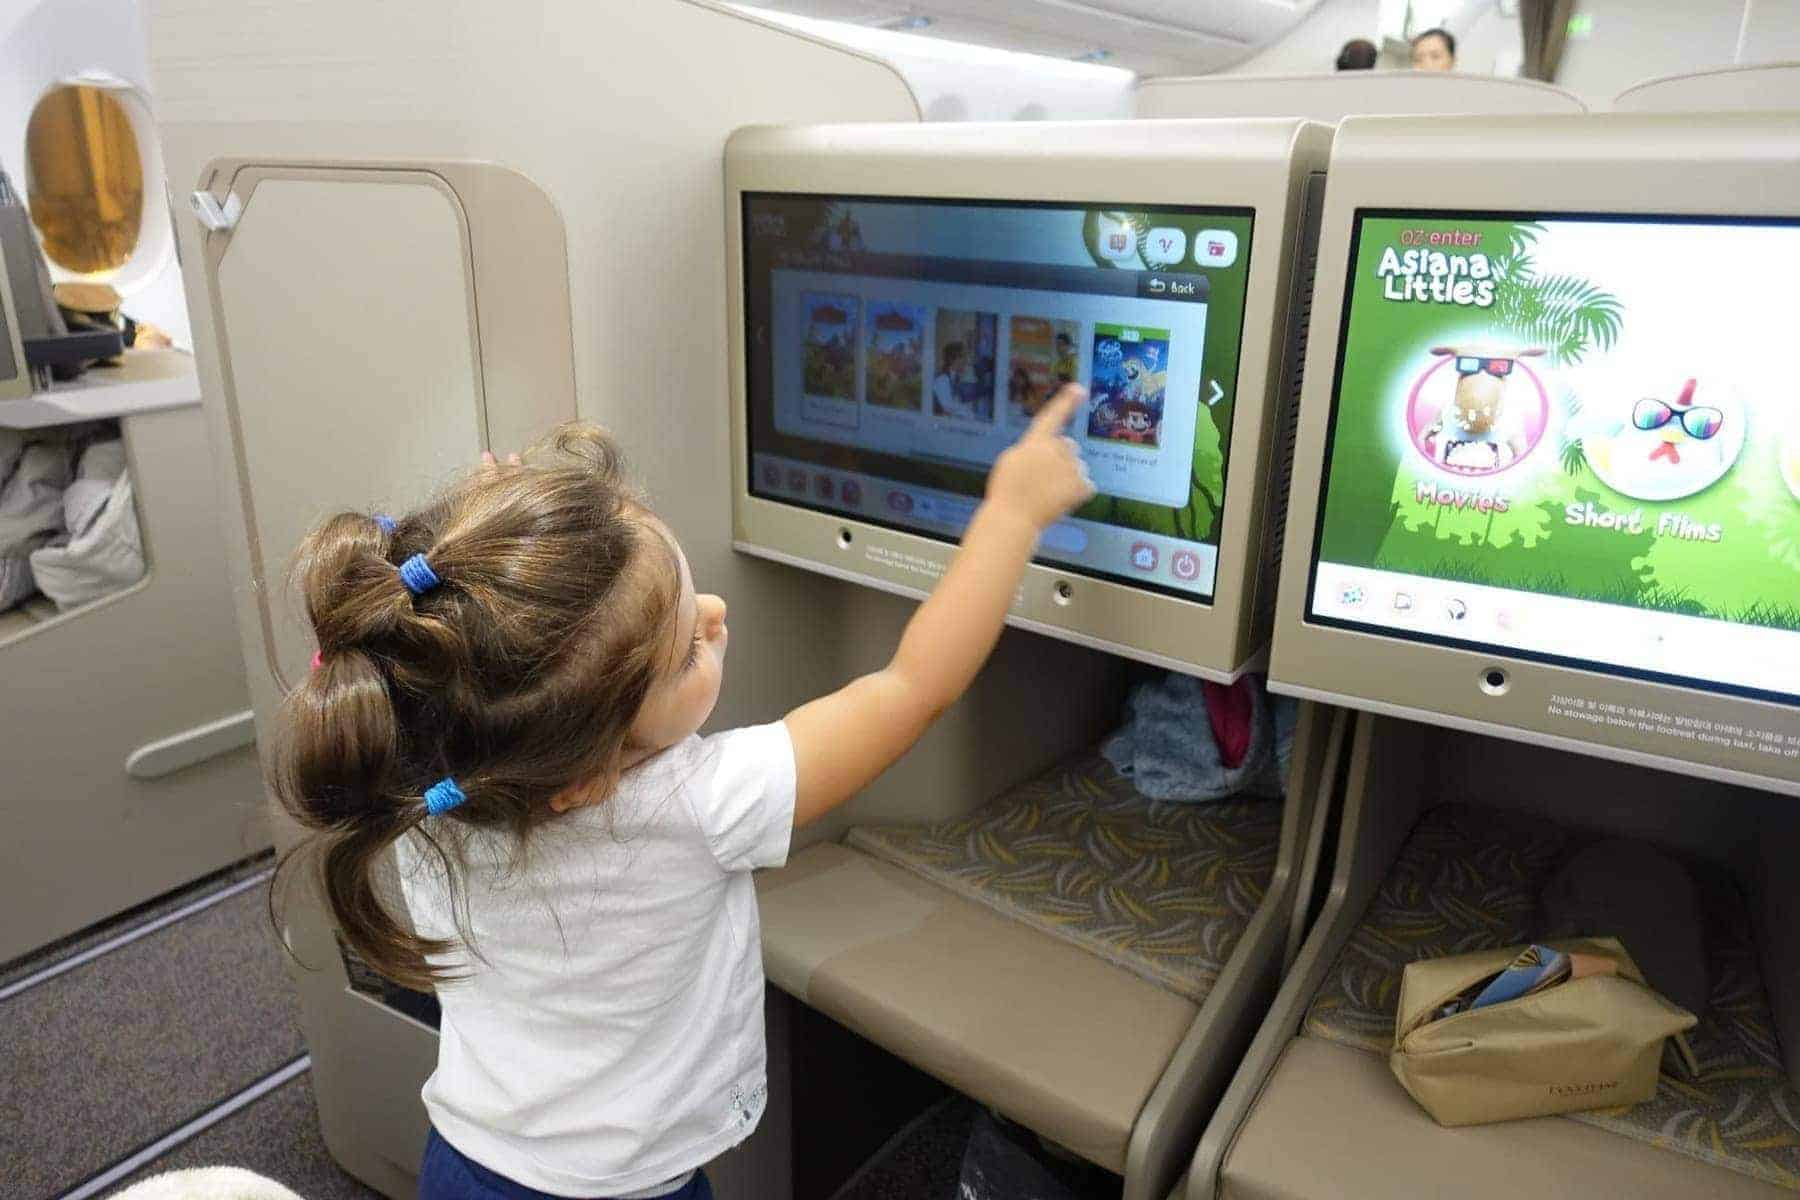 asiana airlines a350 business class icn sfo 46